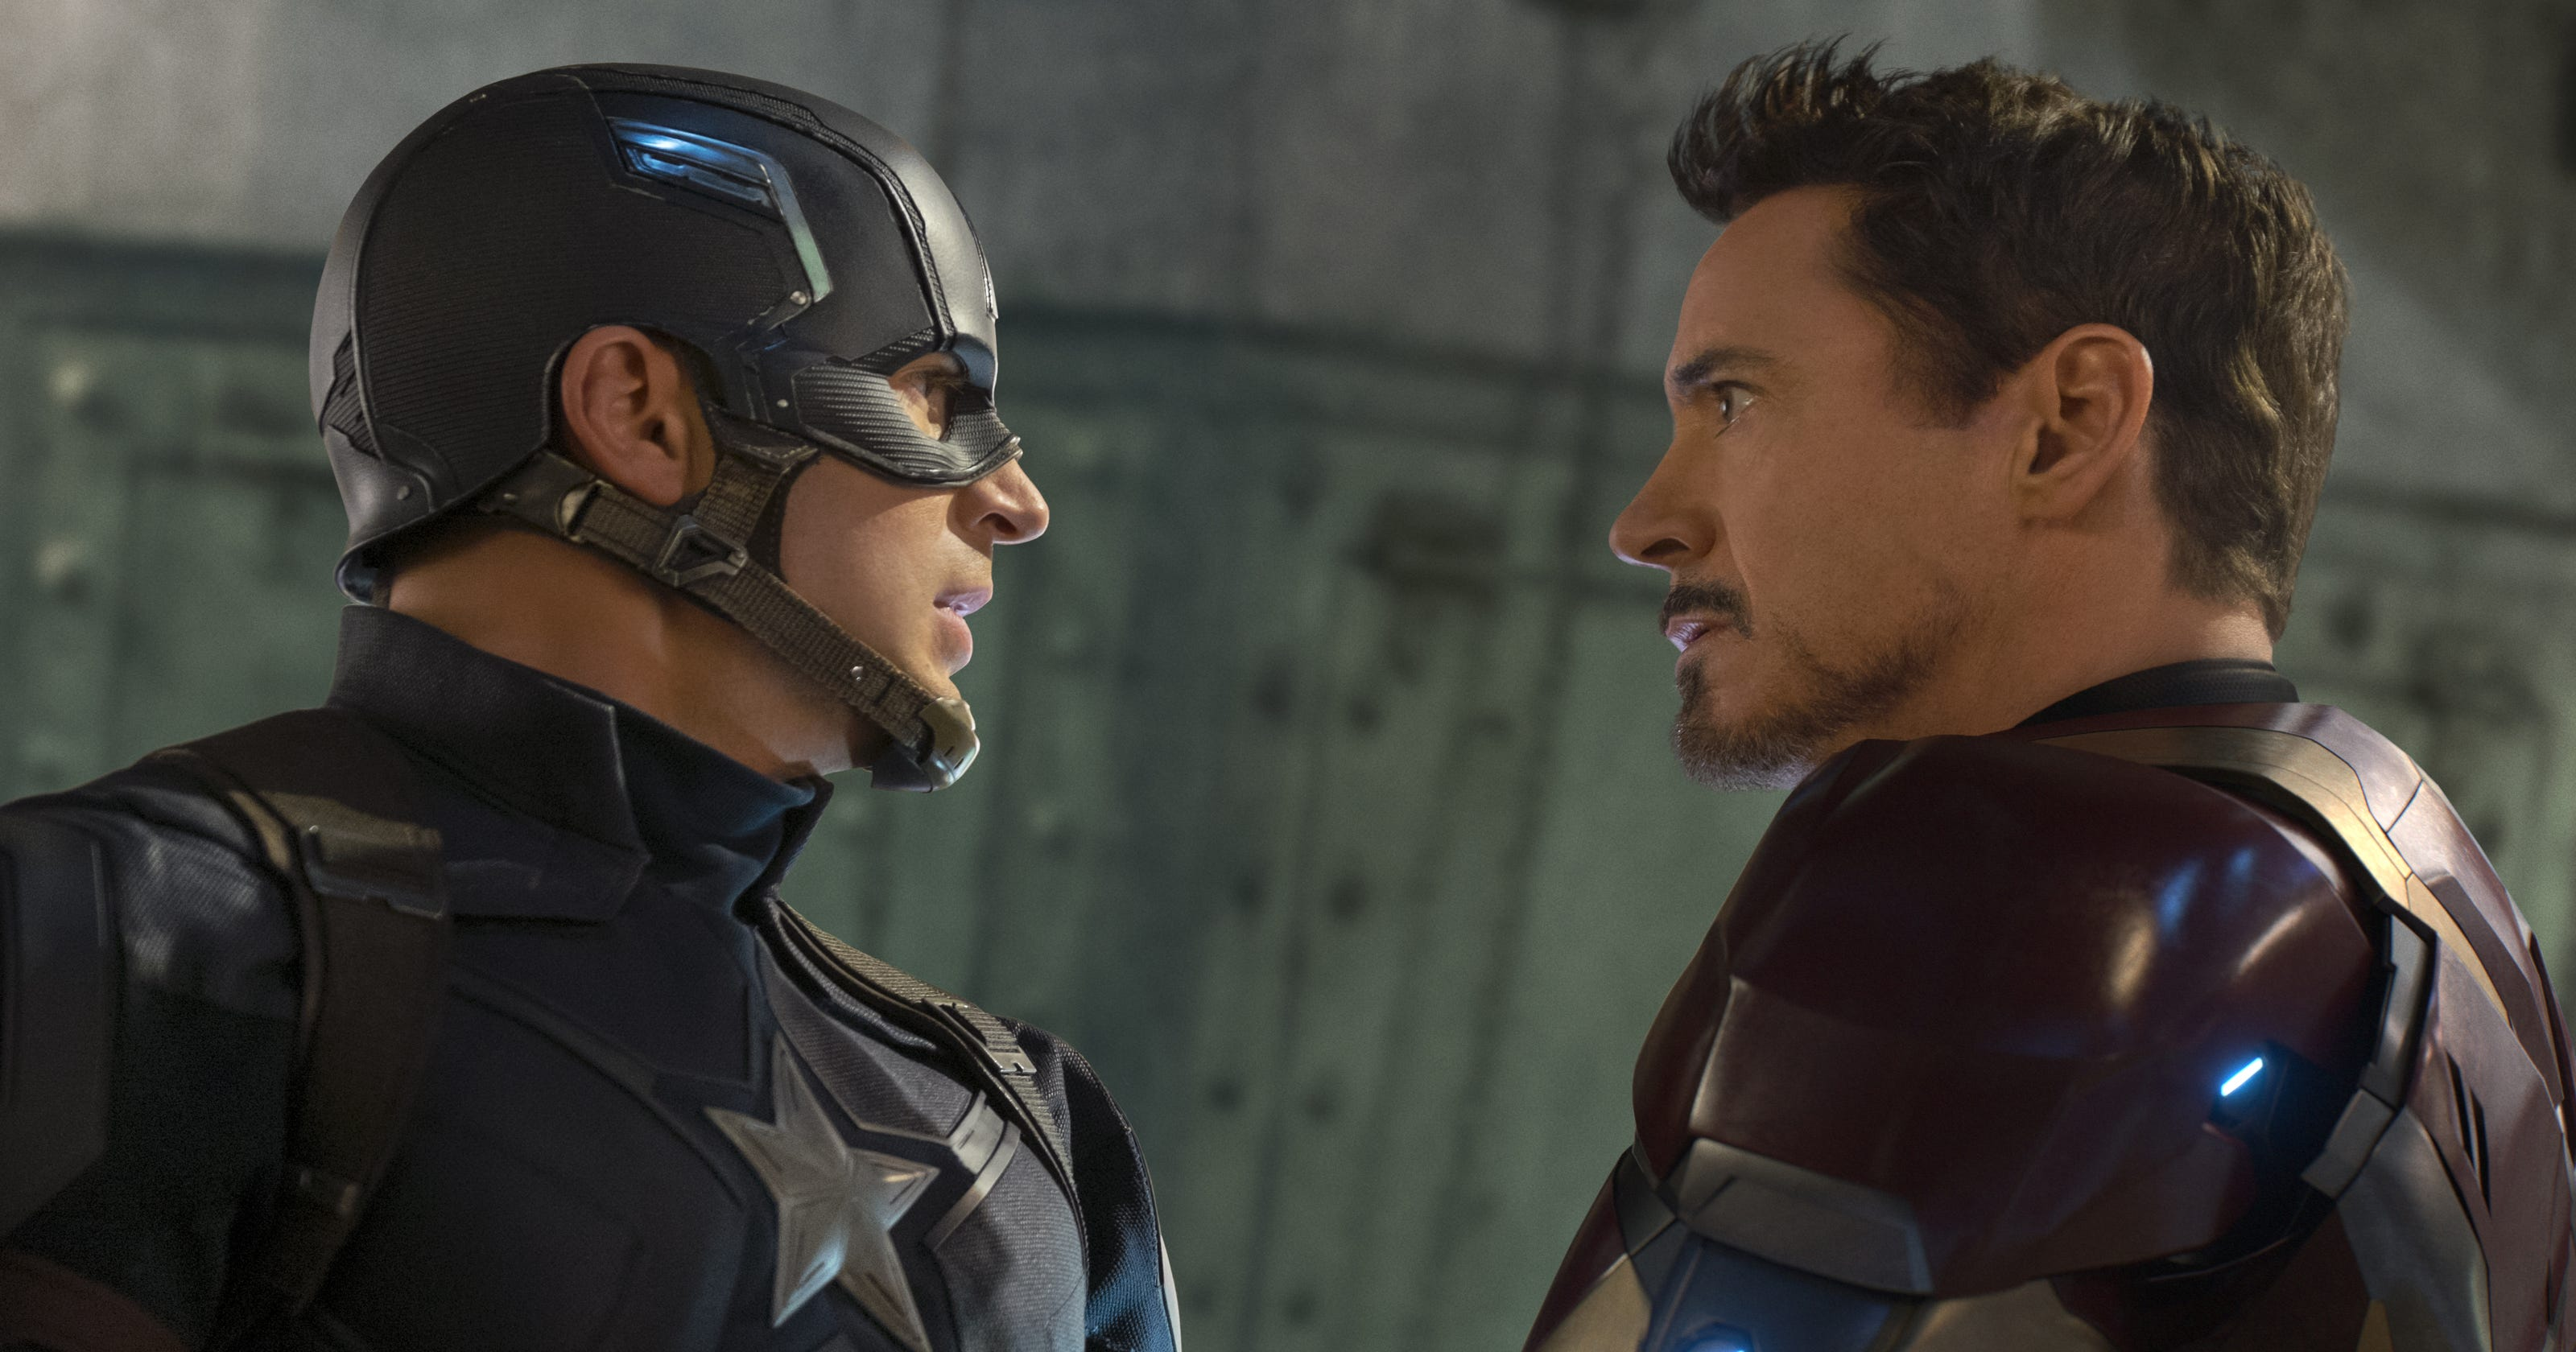 Review: 'Captain America: Civil War' explores family, friendship